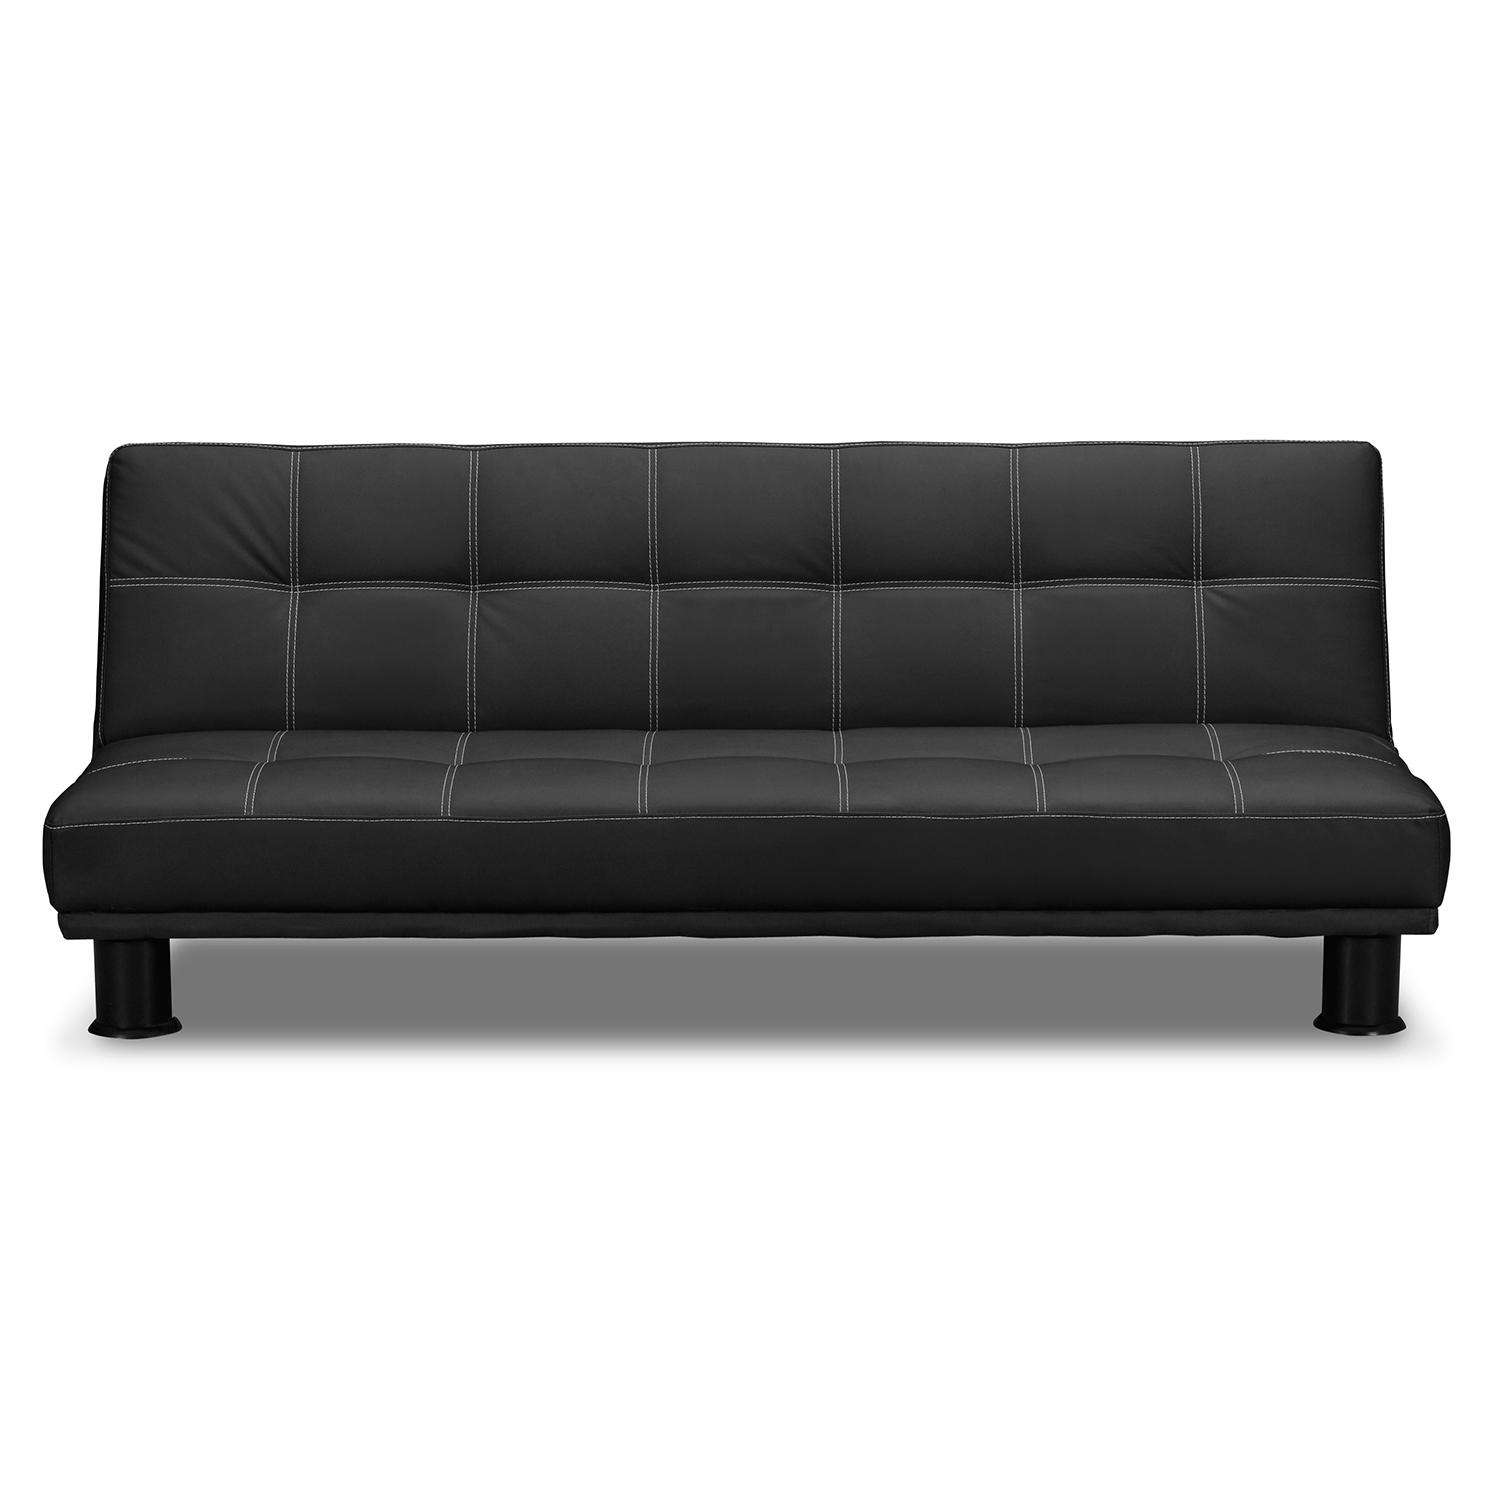 Fabulous Black Leather Futon Sofa Bed Futons Living Room Seating Inside City Sofa Beds (Image 7 of 20)